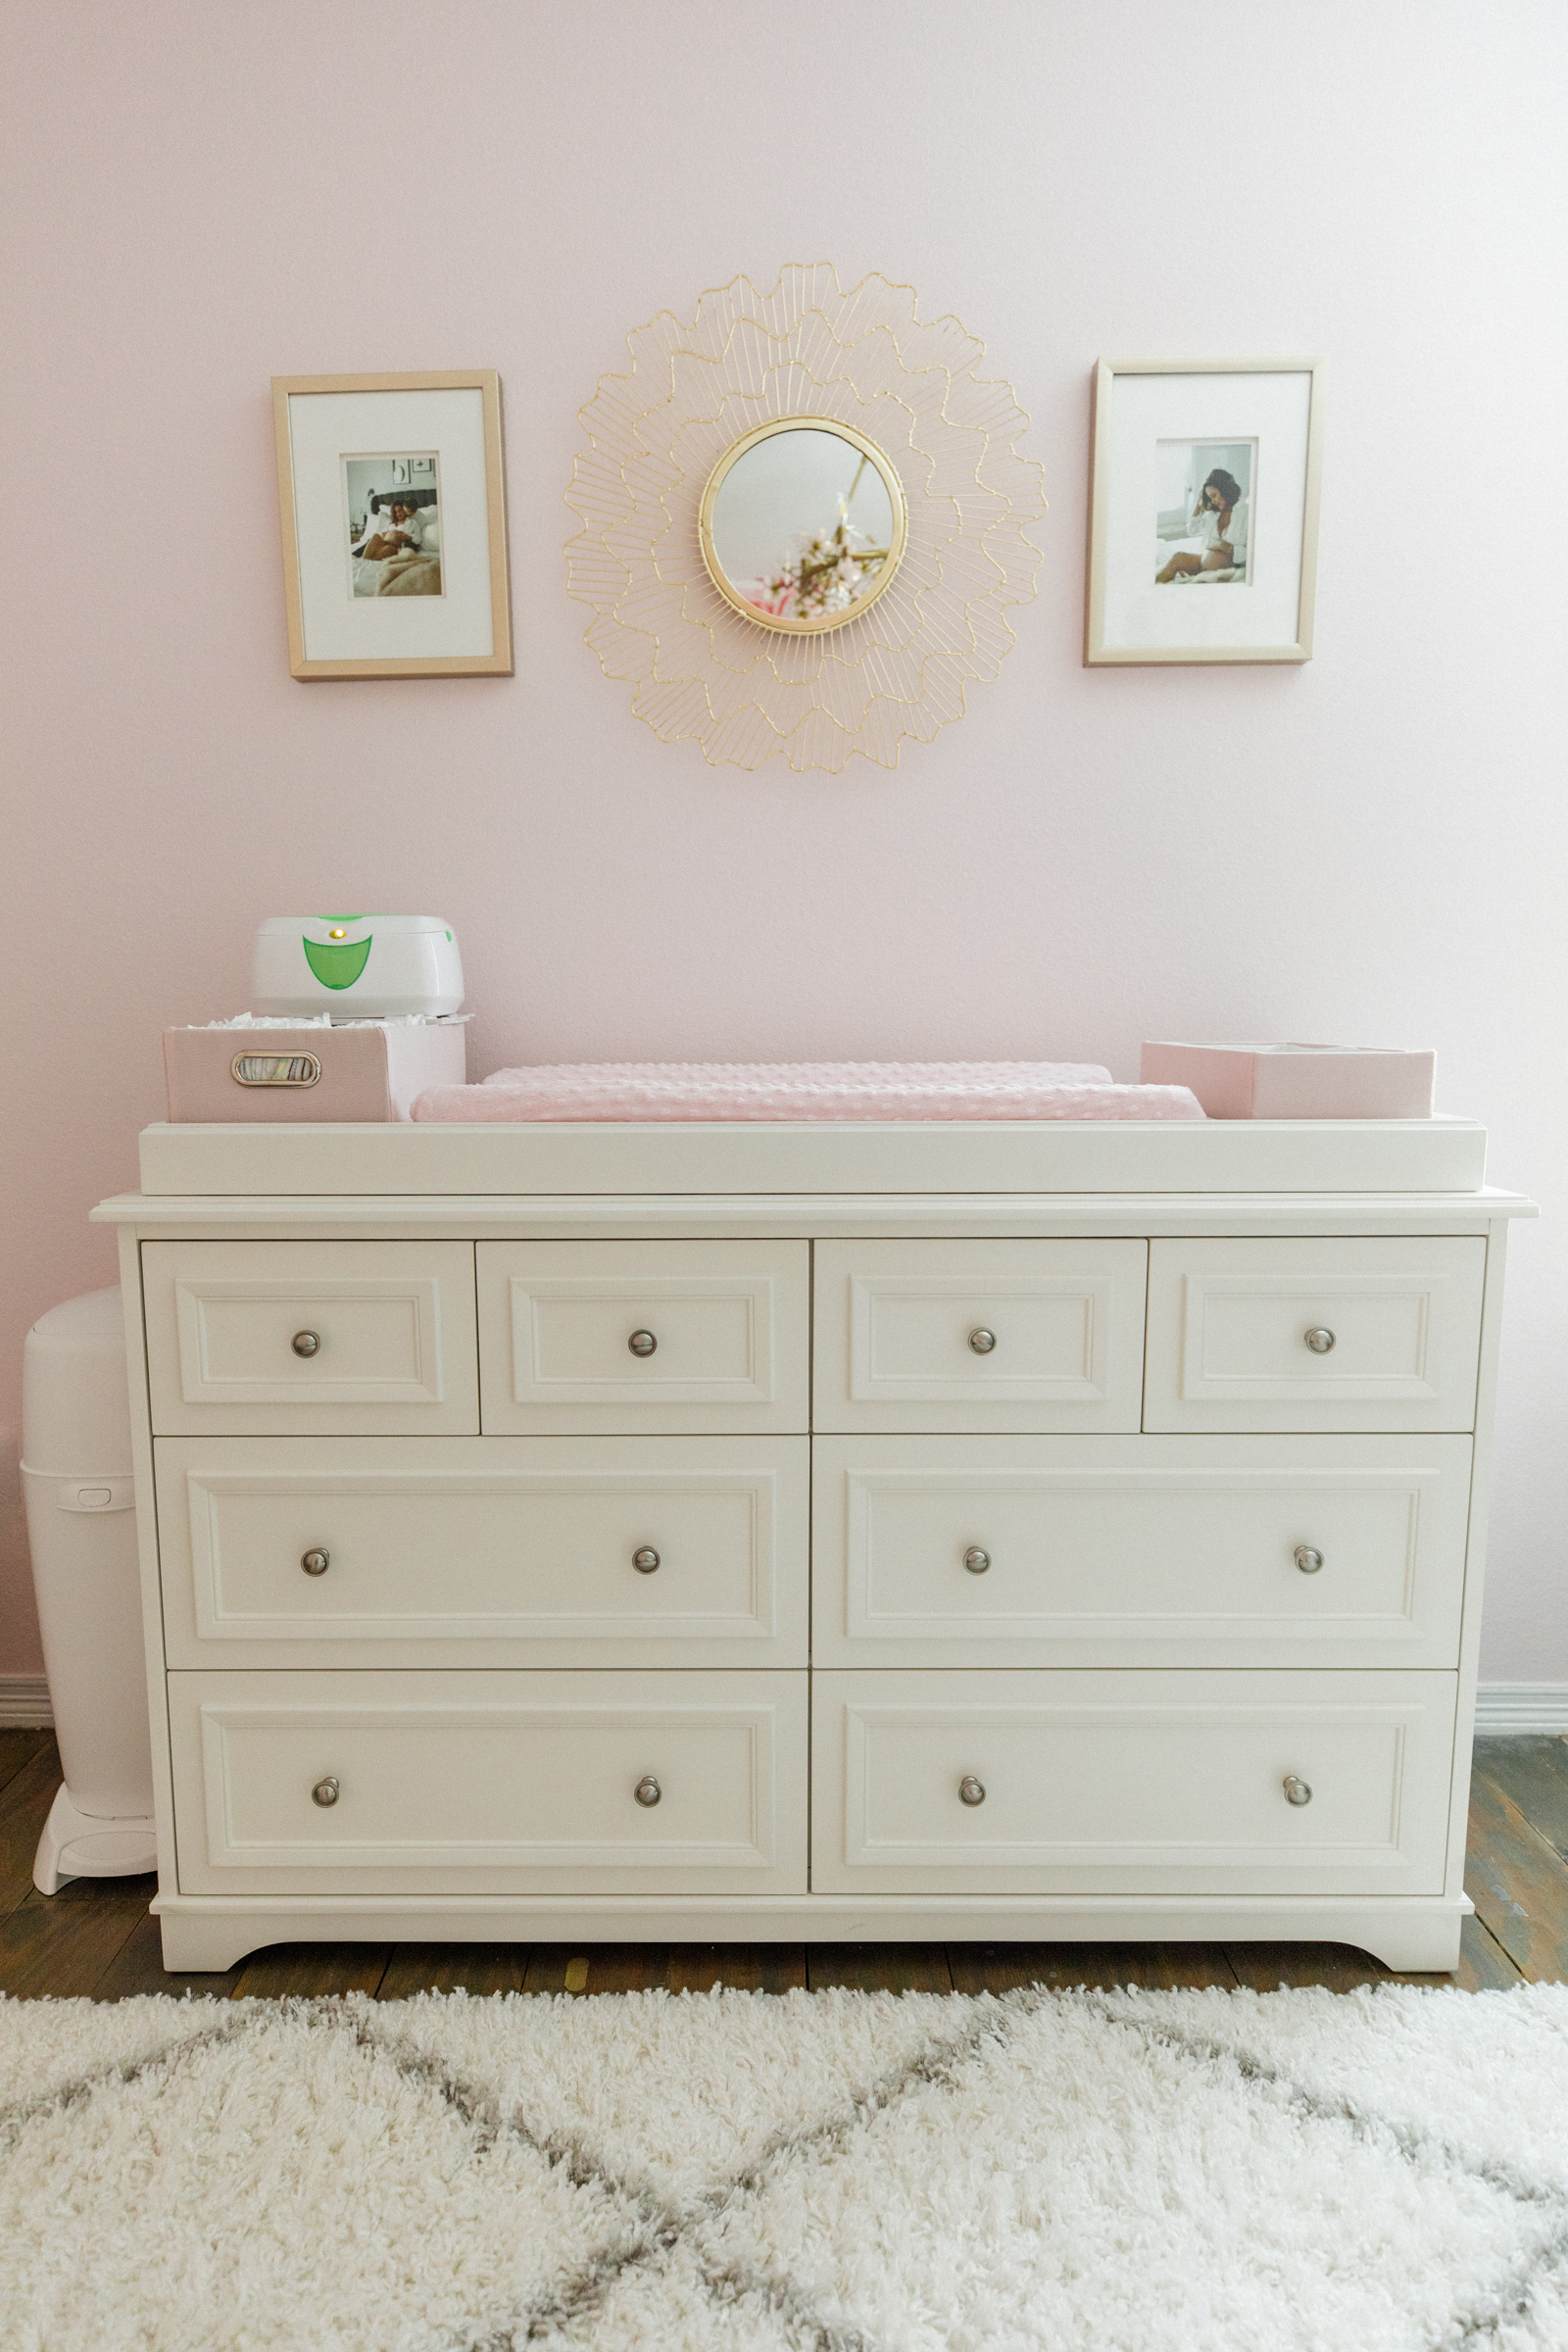 Houston lifestyle blogger Elly Brown shares the baby girl Nursery decor and Pottery Barn dresser